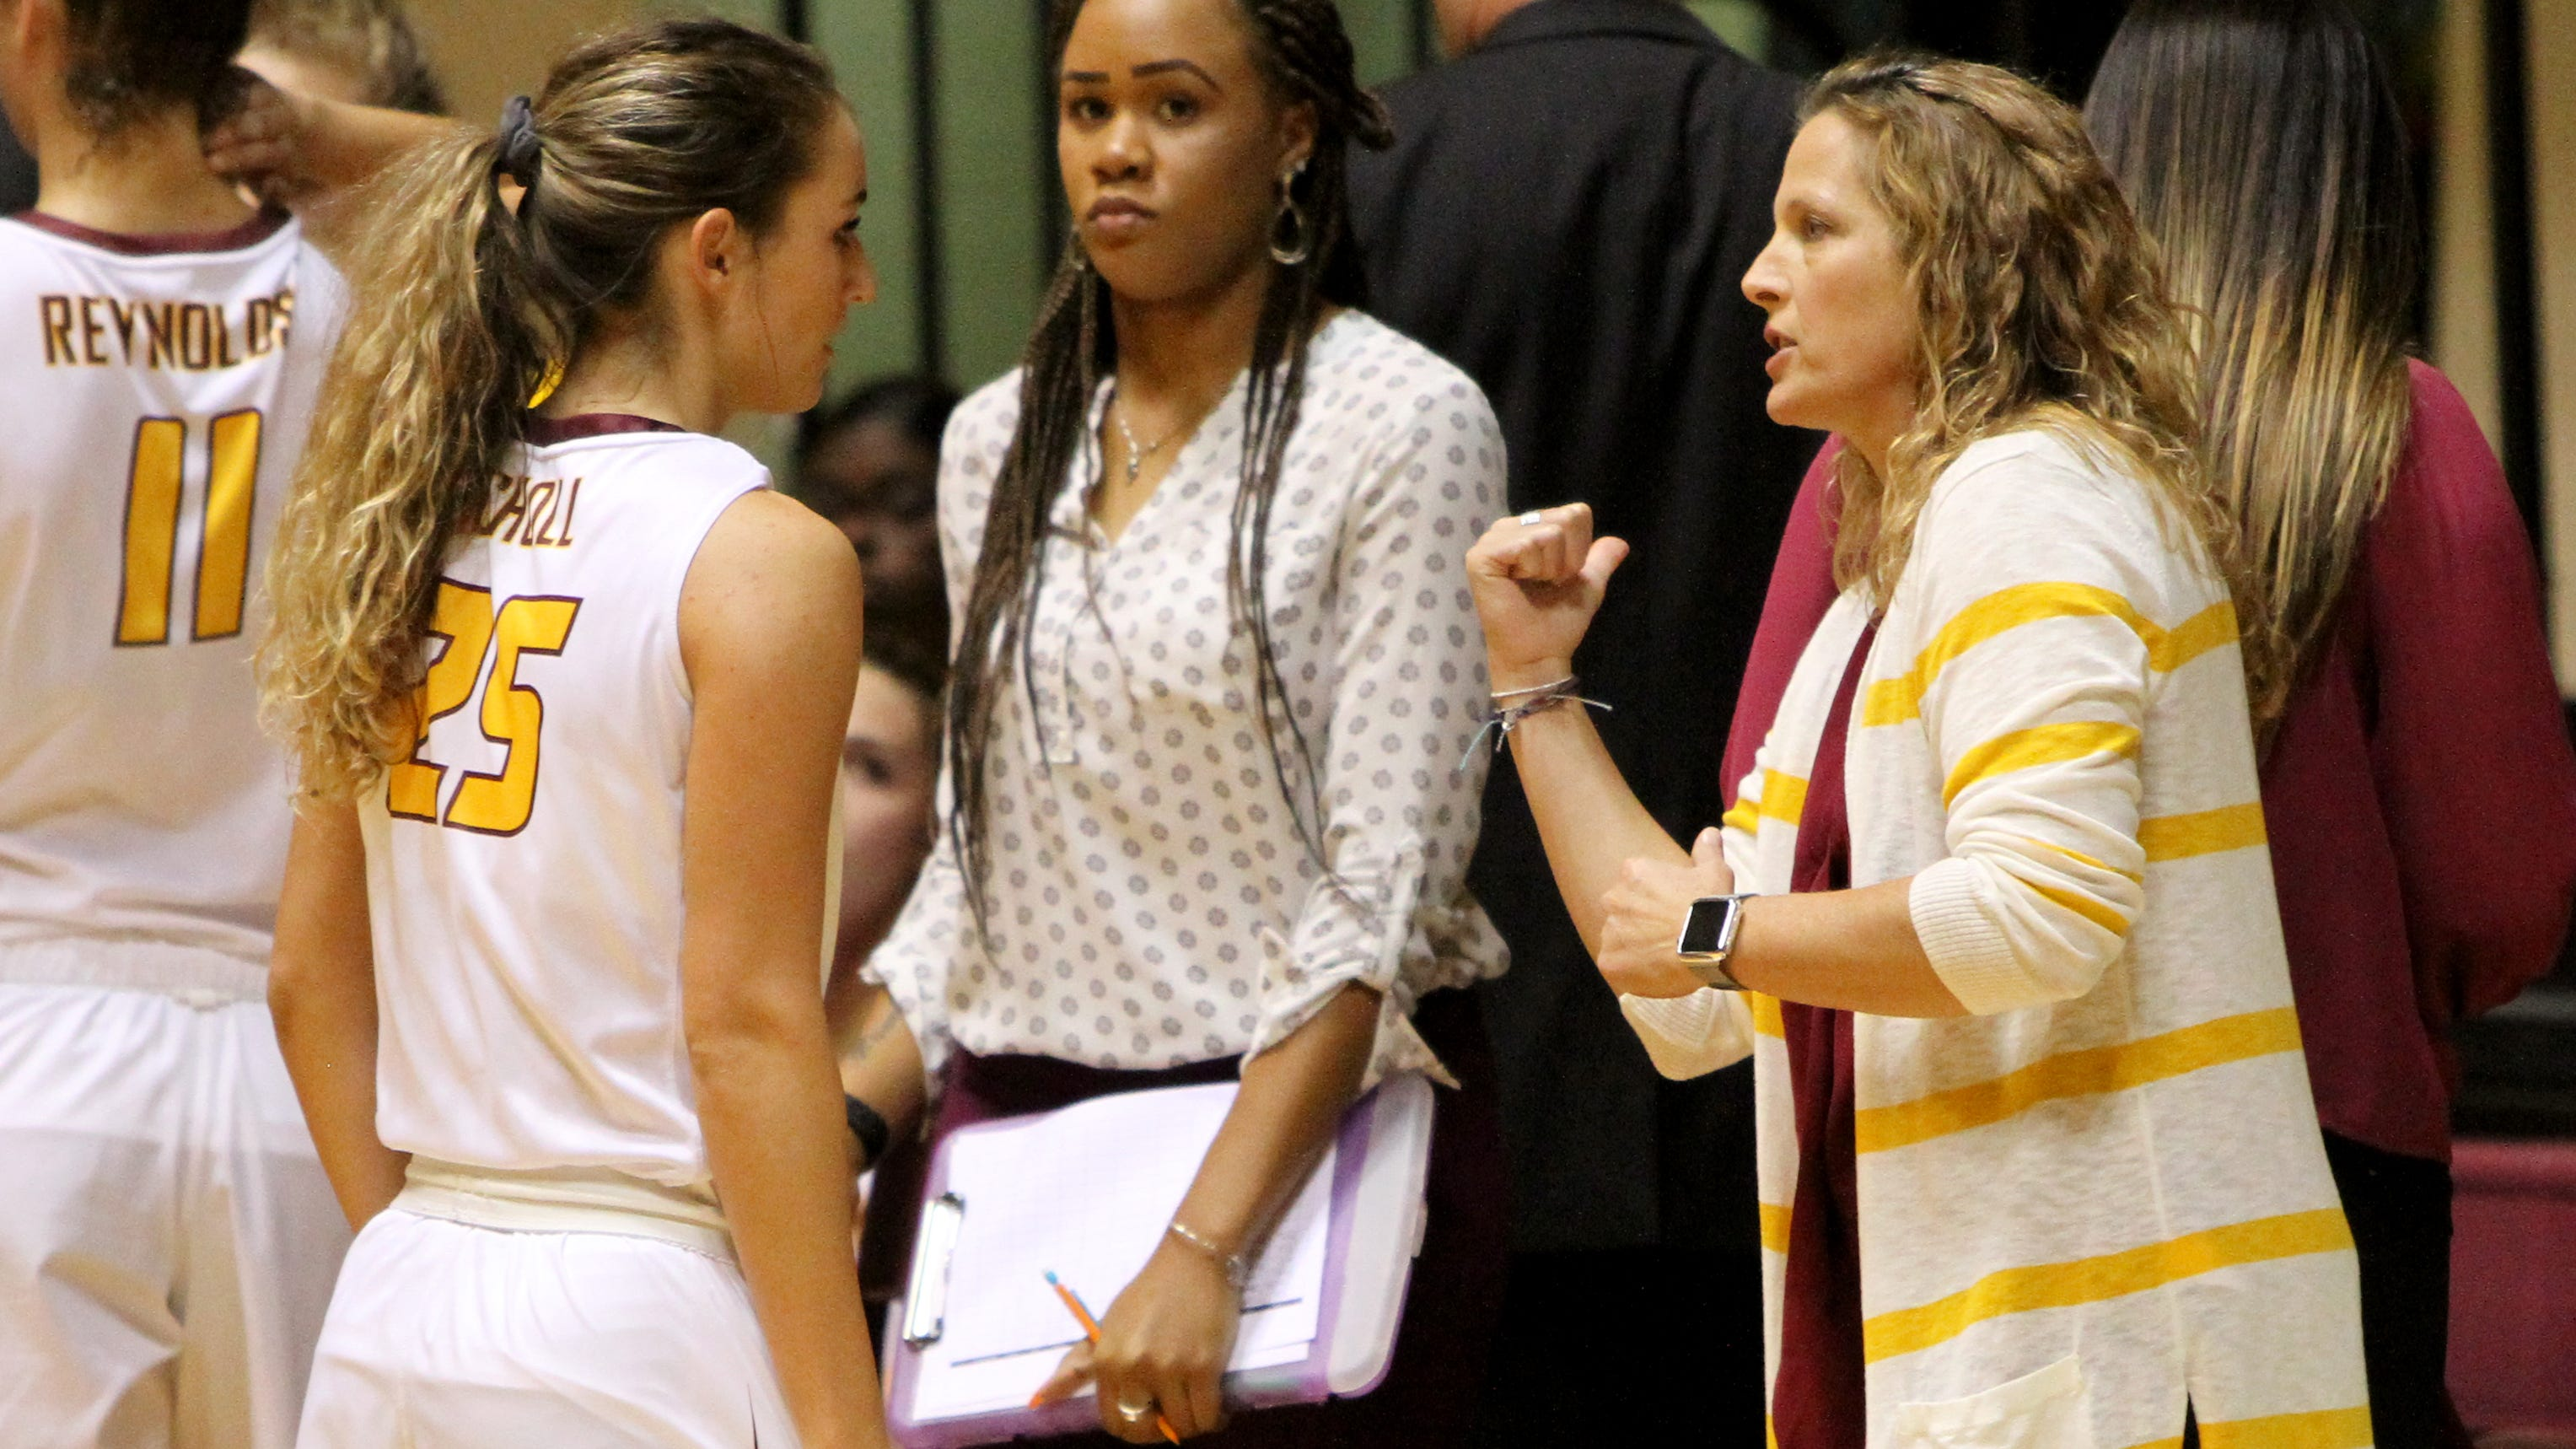 Midwestern State's Anni Scholl talks to head basketball coach Noel Johnson during a timeout in the game against Wiley College Monday, Nov. 5, 2018, in D.L. Ligon Coliseum at MSU. The Mustangs defeated the Wildcats 91-63.